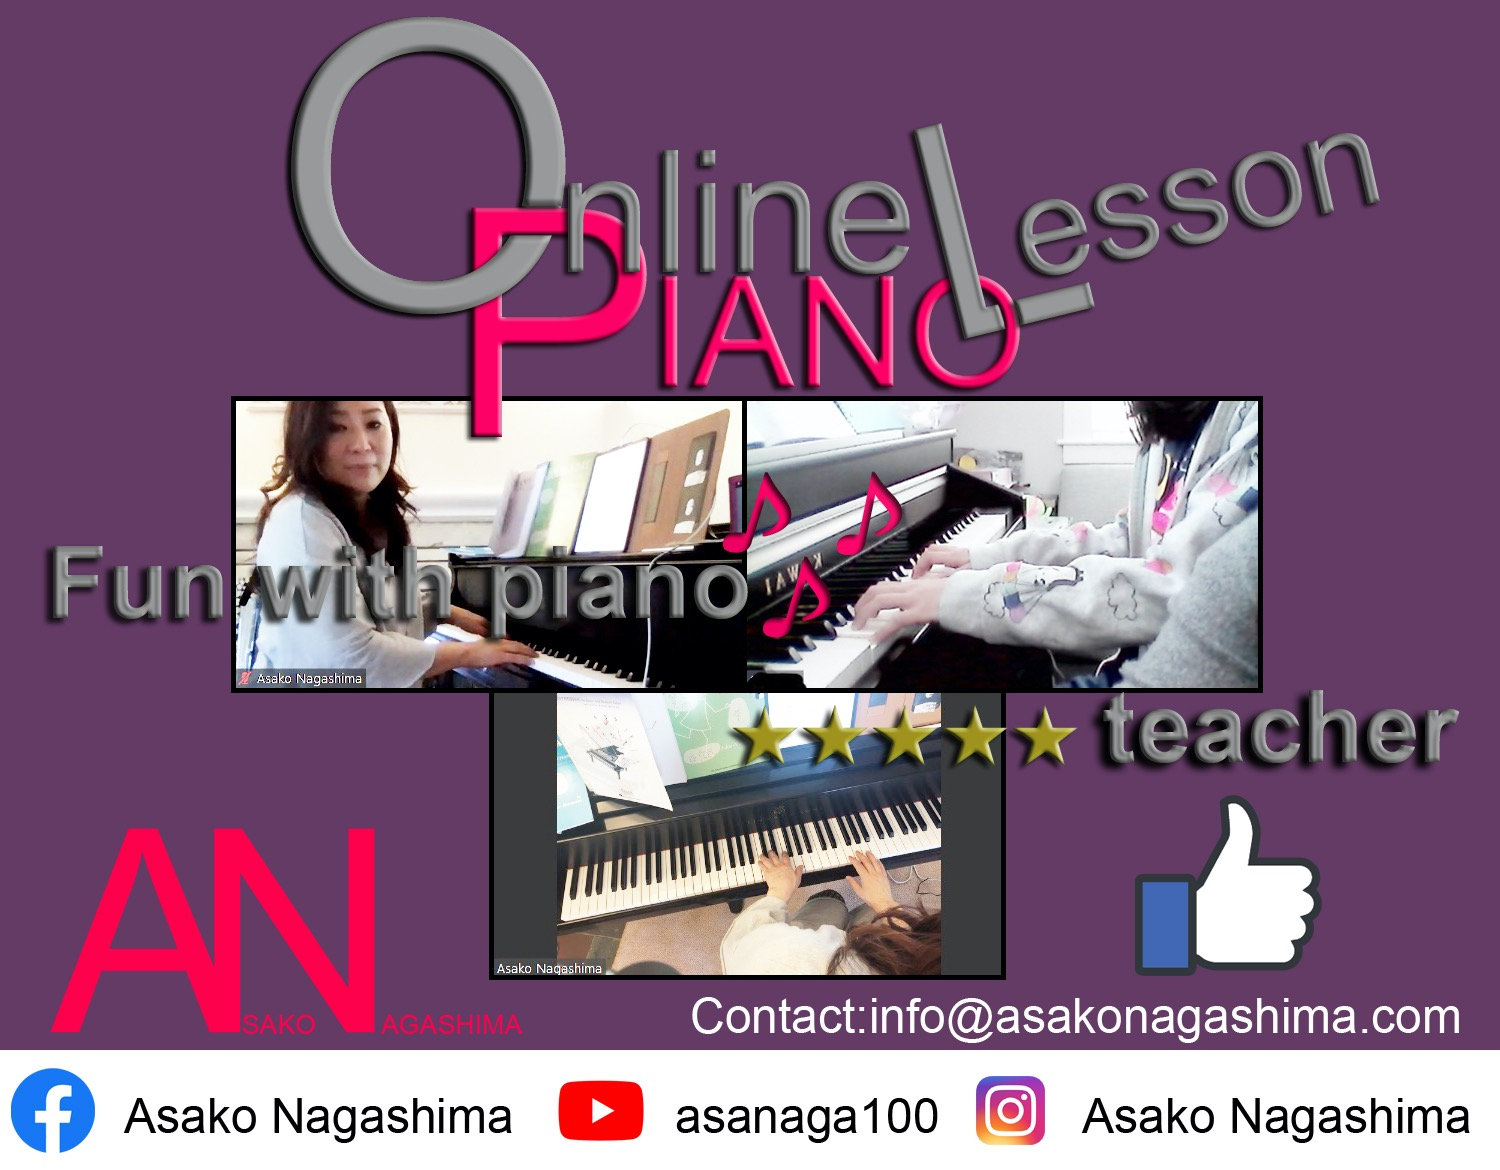 Free trial lesson for new student